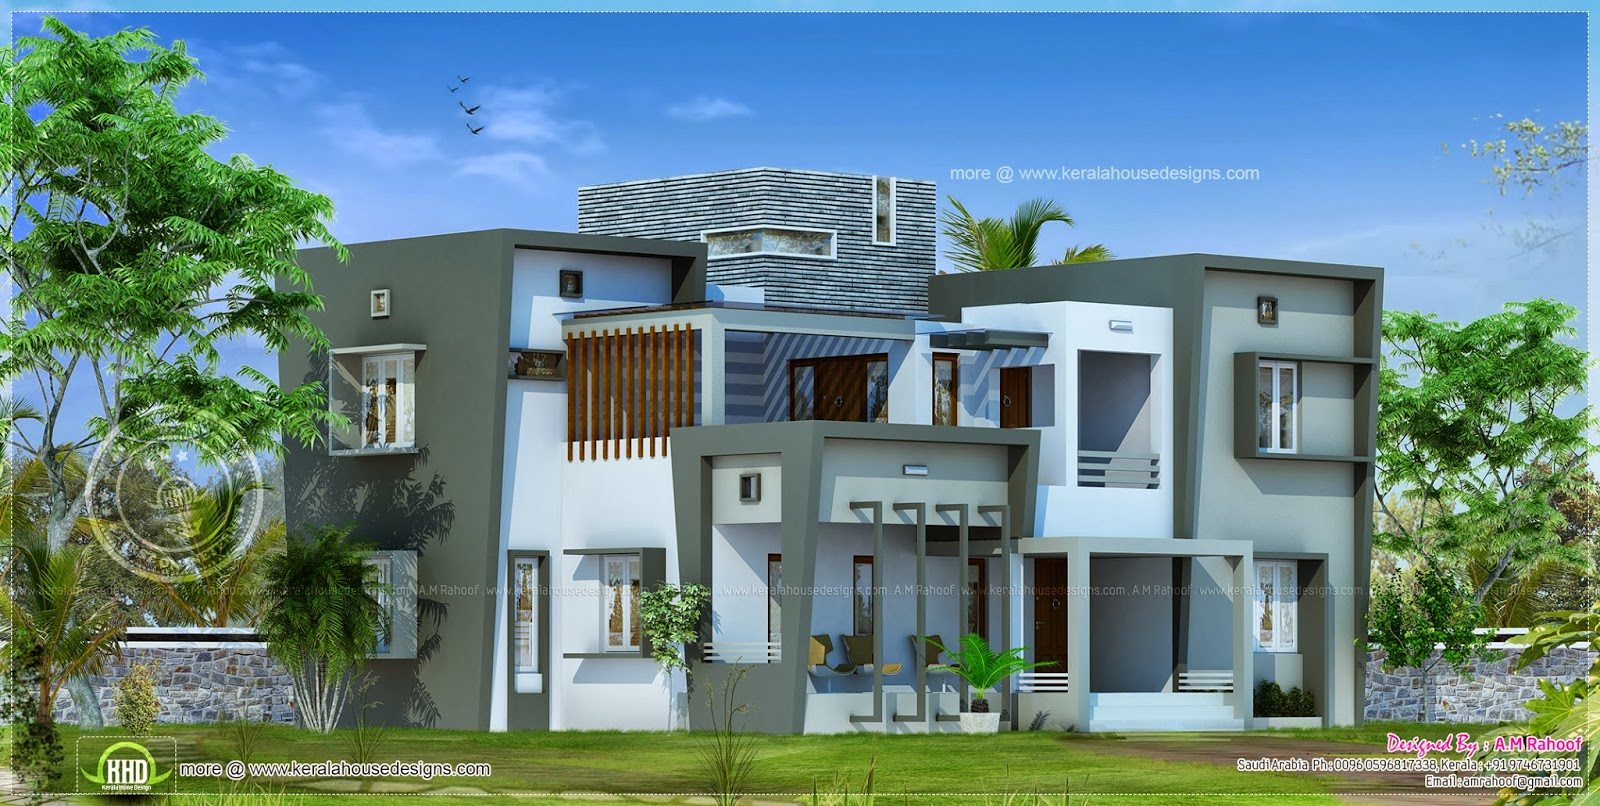 Modern house design in 2850 square feet home kerala plans Style house fashion trading company uae